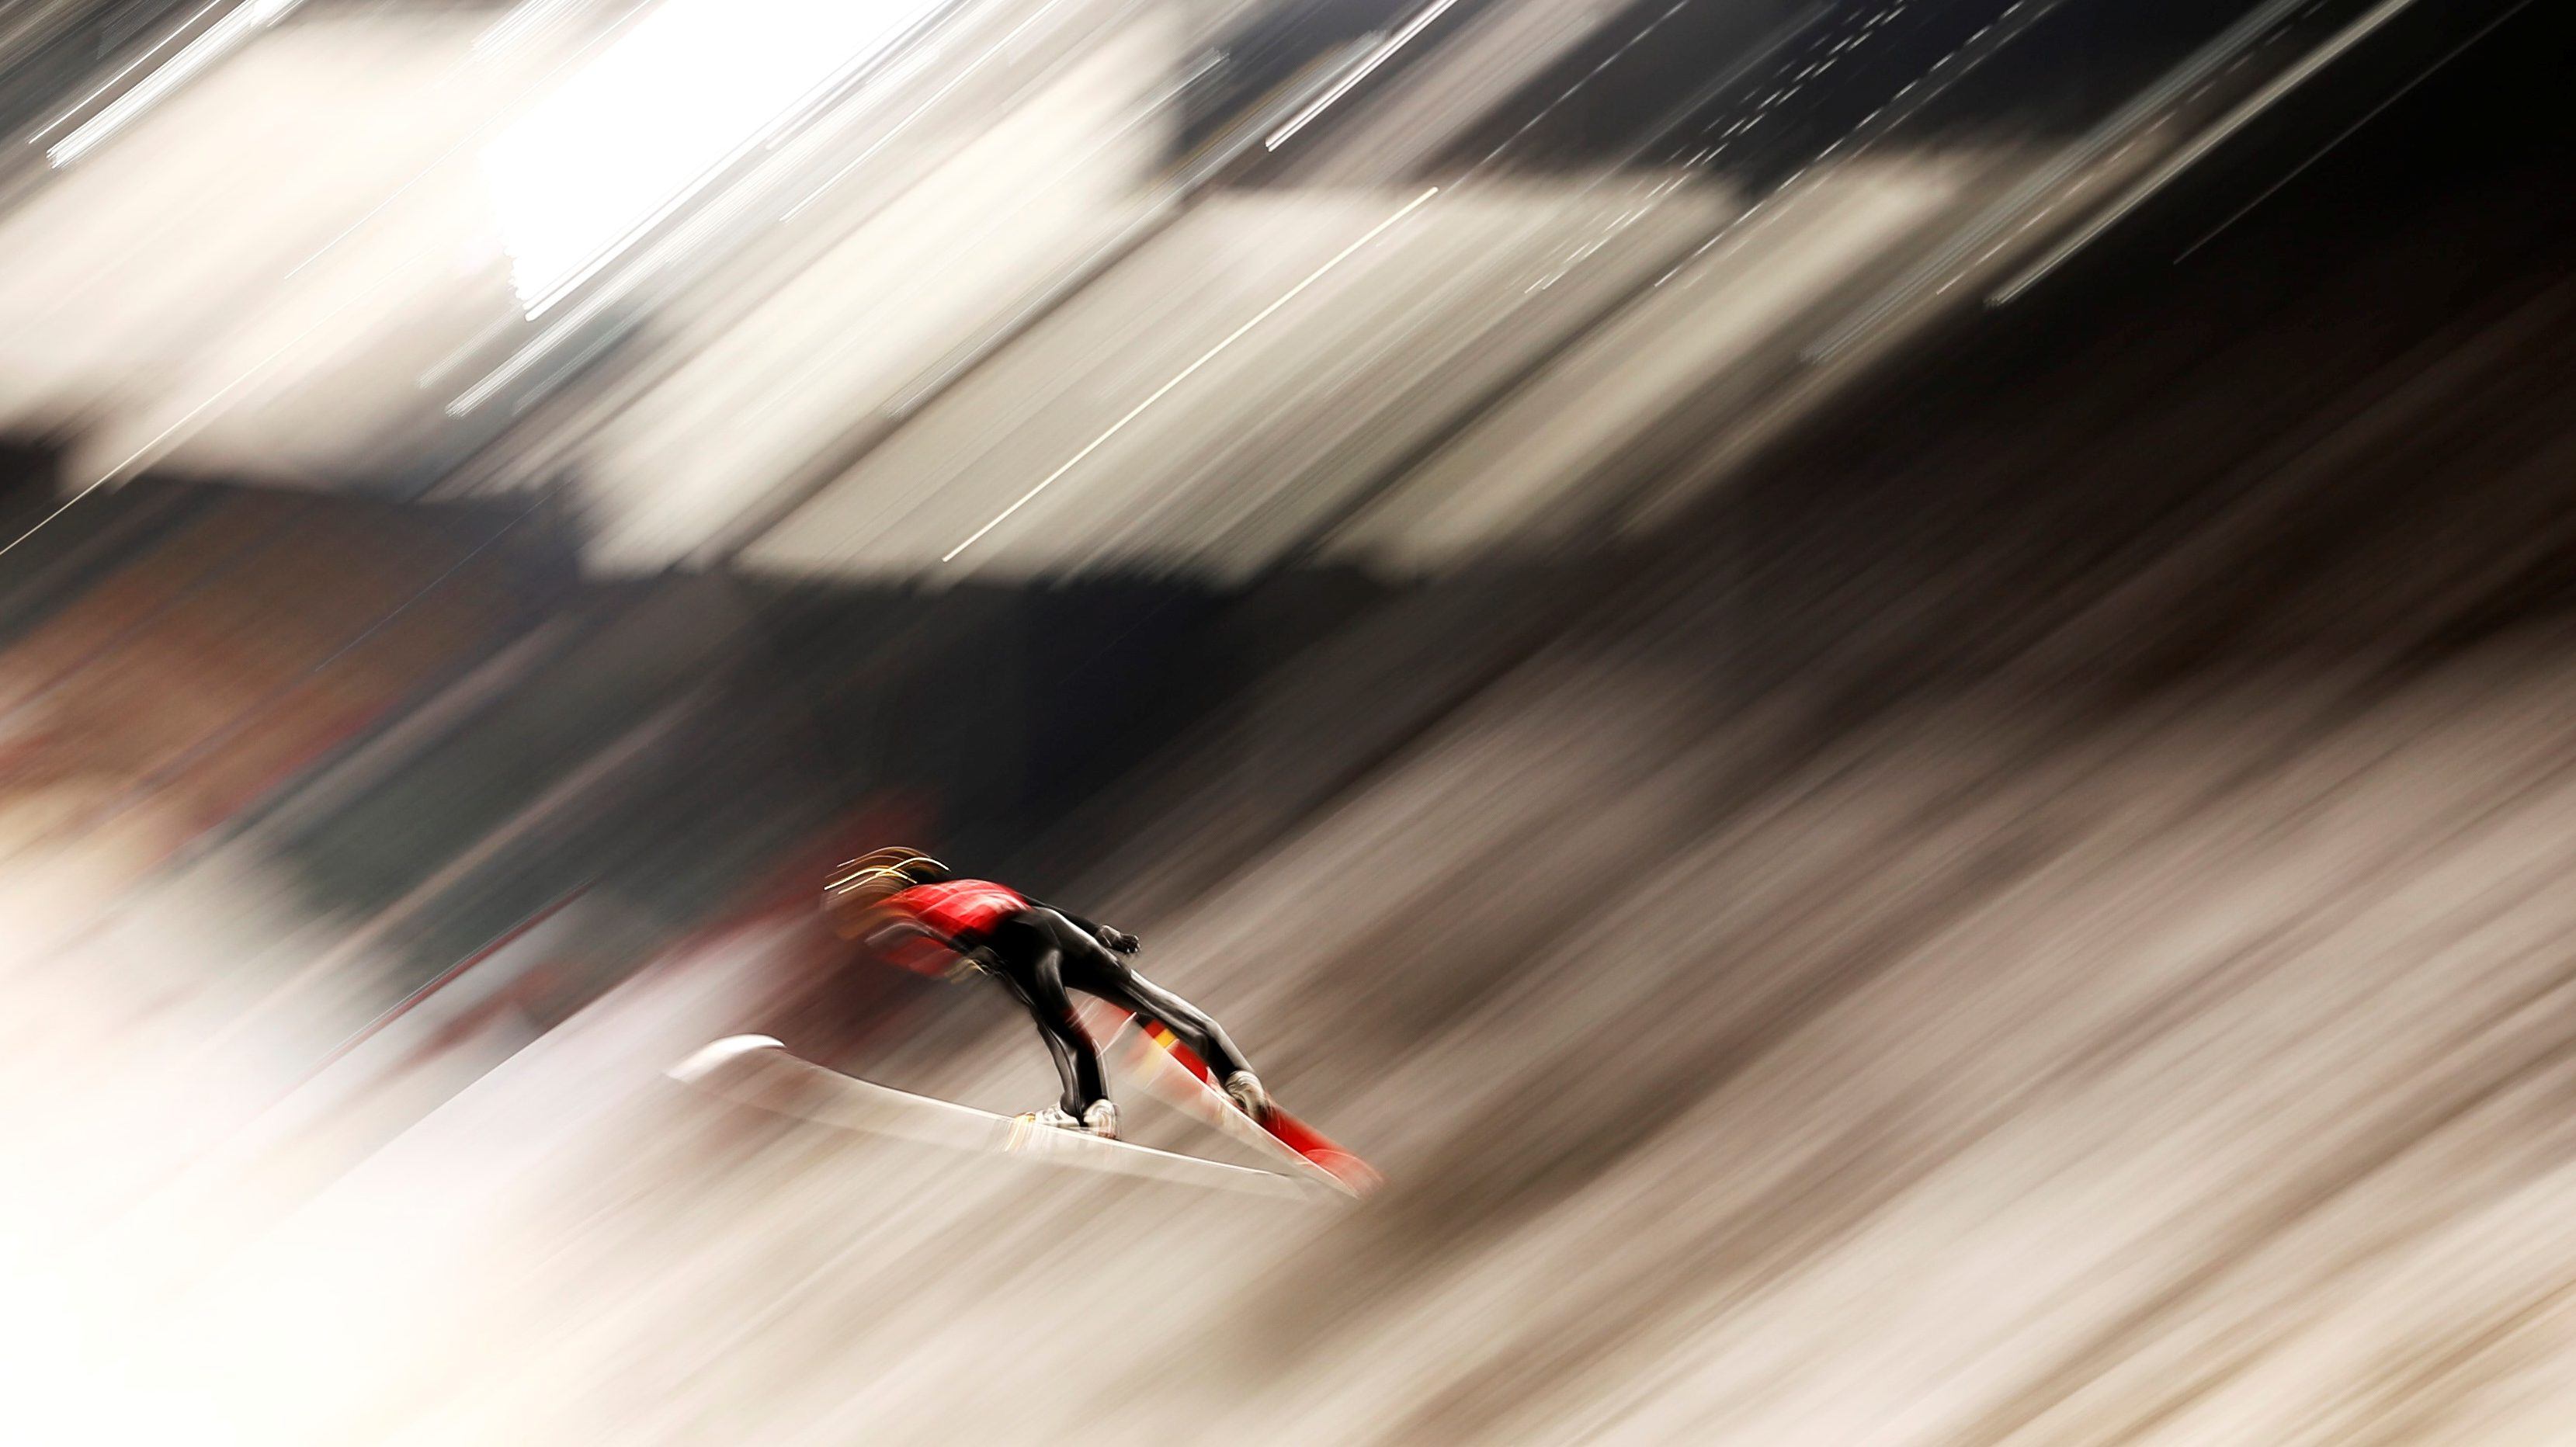 """Ski Jumping - Pyeongchang 2018 Winter Olympics - Men's Large Hill Individual Training - Alpensia Ski Jumping Centre - Pyeongchang, South Korea - February 14, 2018 - Stephan Leyhe of Germany trains. REUTERS/Dominic Ebenbichler  SEARCH """"OLYMPICS BEST"""" FOR ALL PICTURES. TPX IMAGES OF THE DAY. - RC1317A93900"""